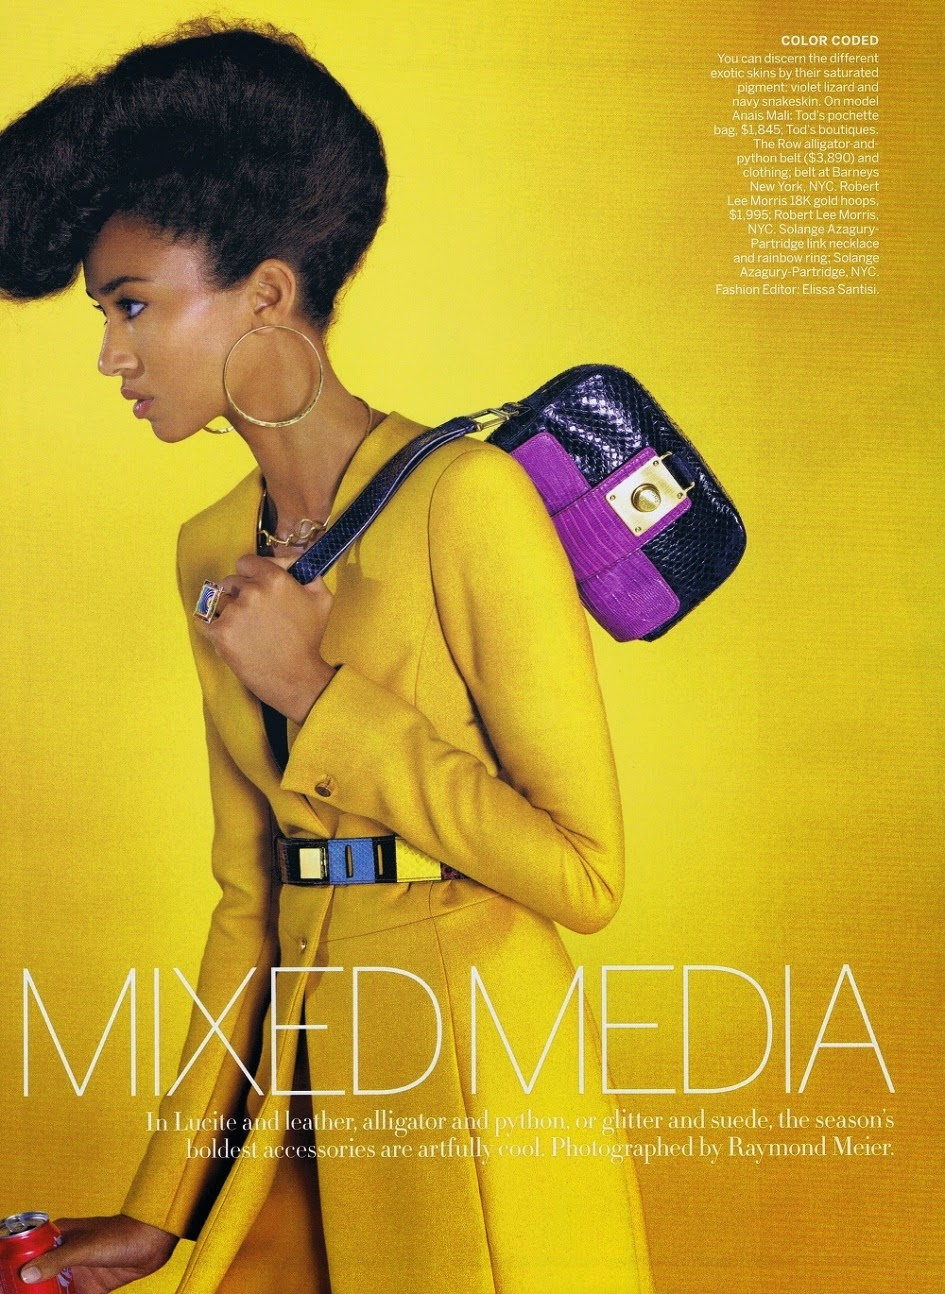 Anais Mali by Reymond Meier for Vogue US August 2011 | Ses Rêveries